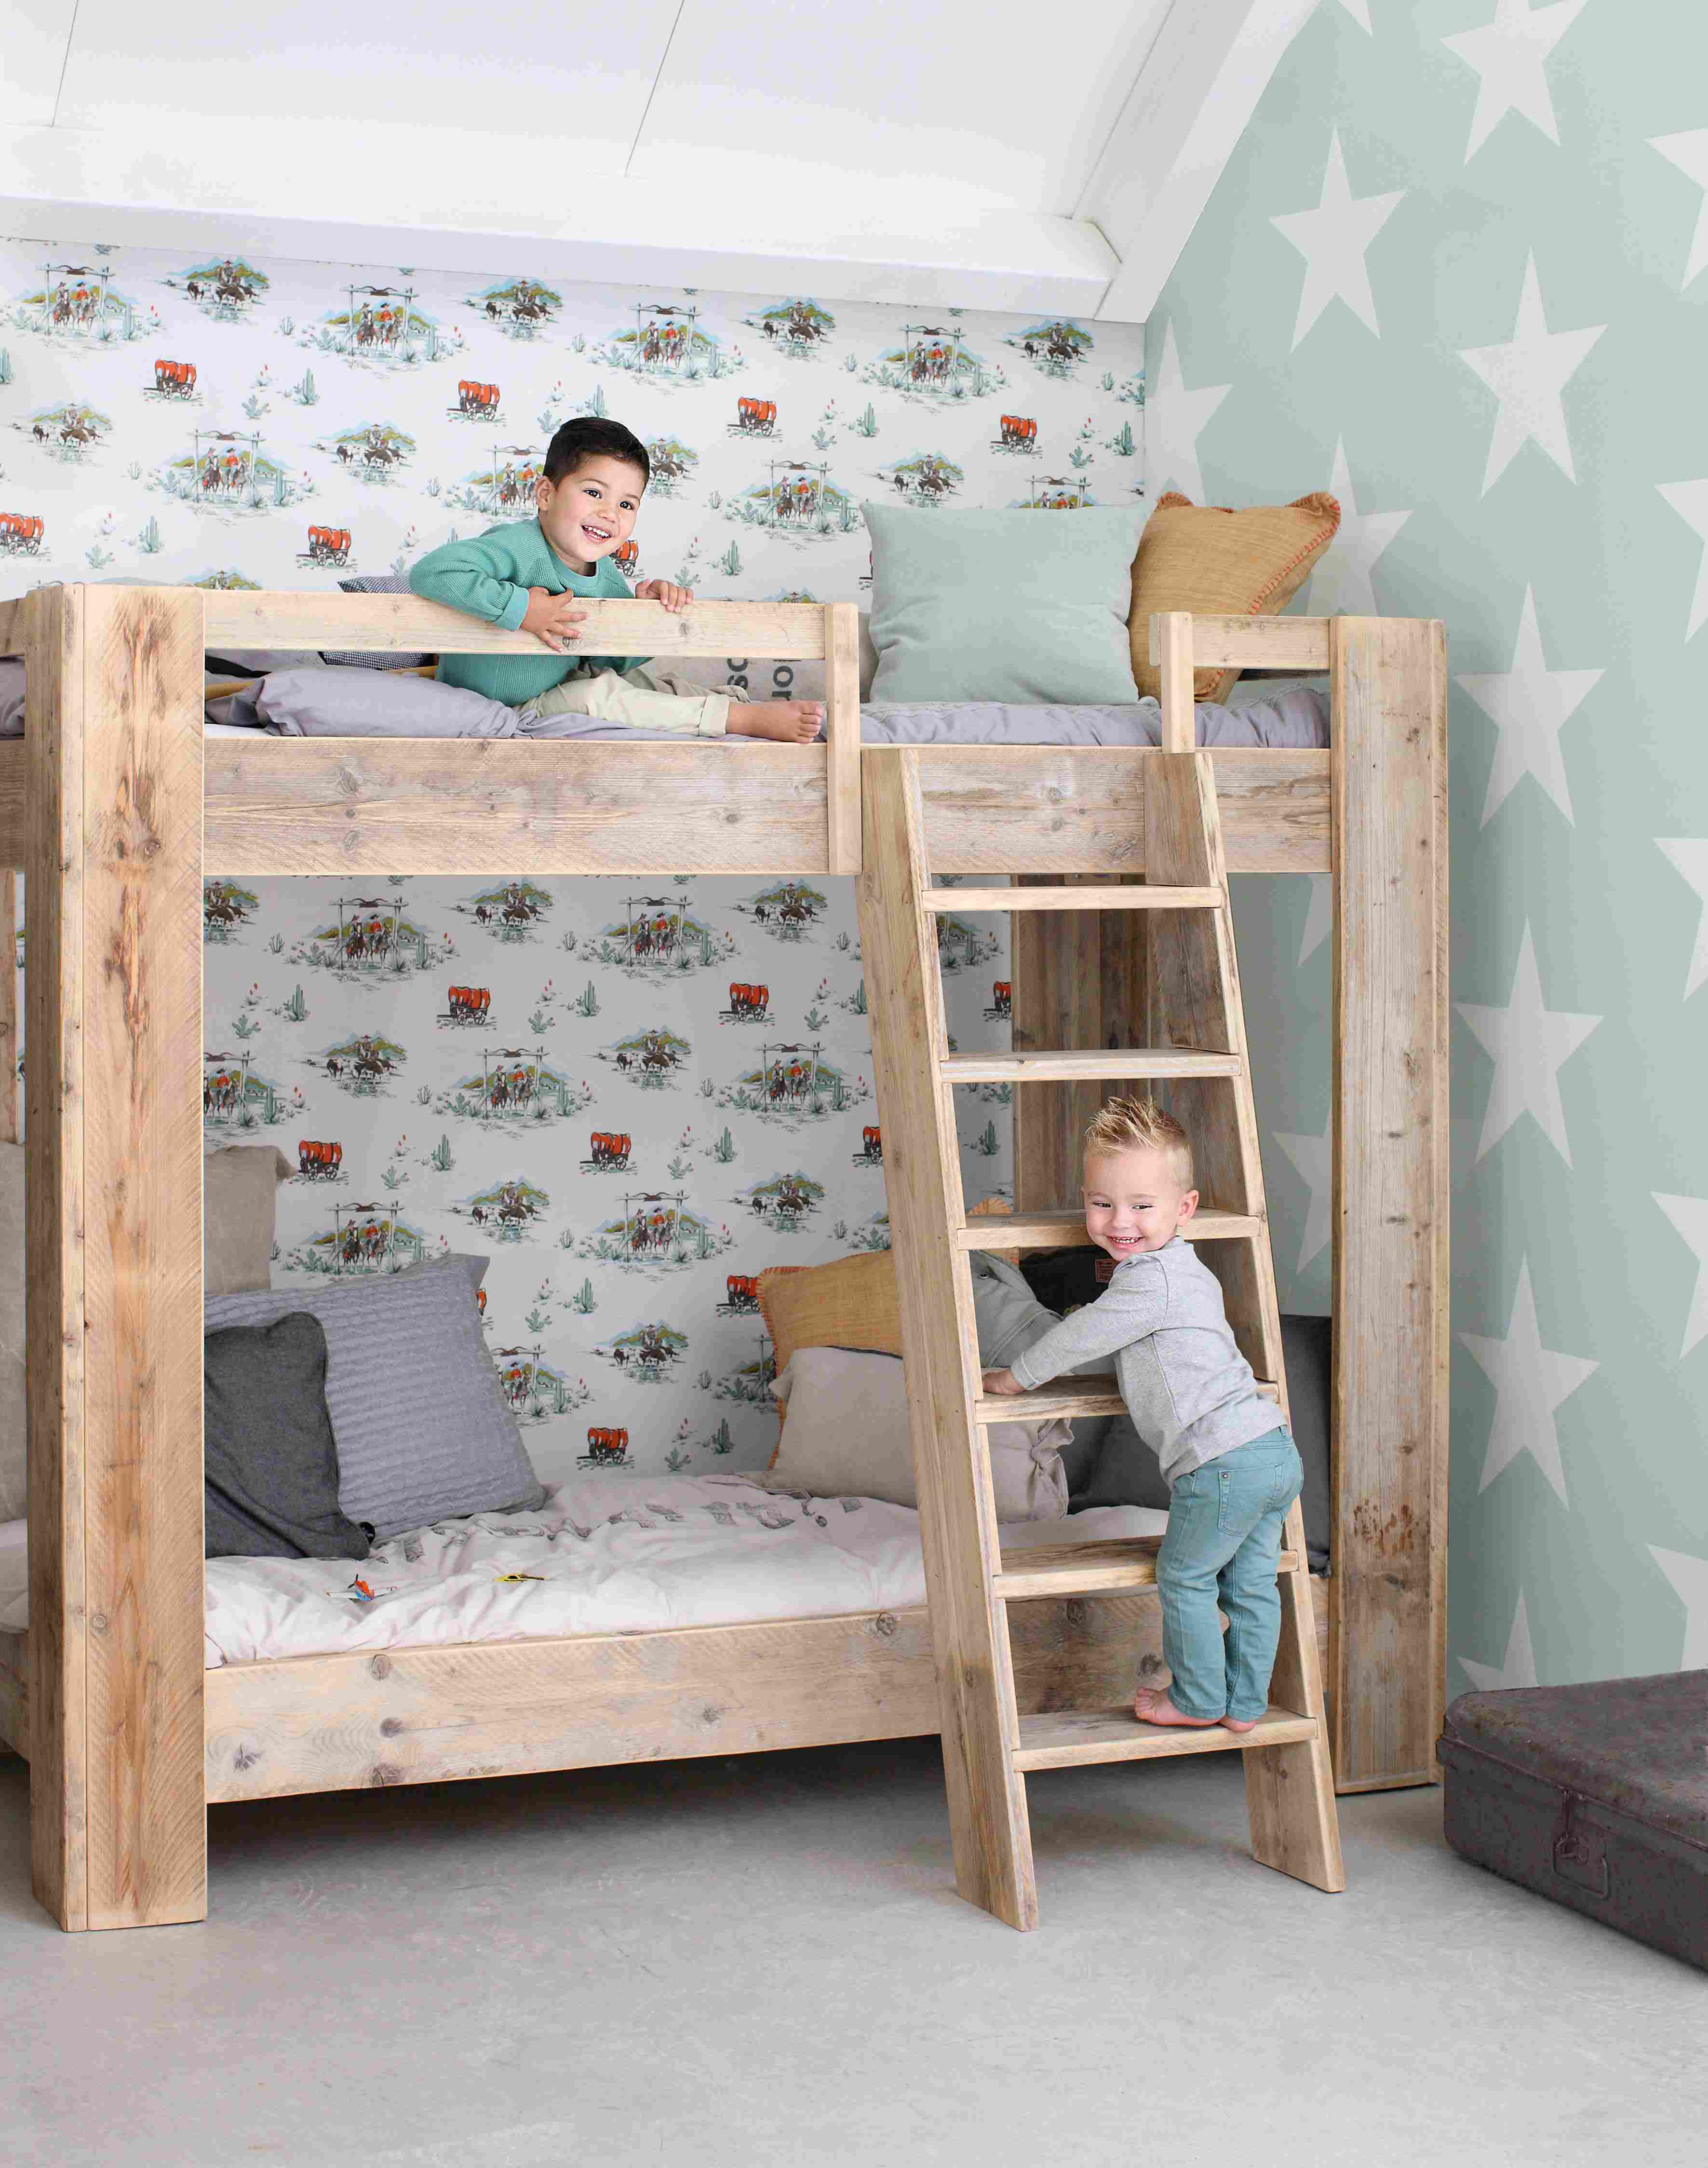 kinderzimmer tapeten kostenloser schneller versand. Black Bedroom Furniture Sets. Home Design Ideas